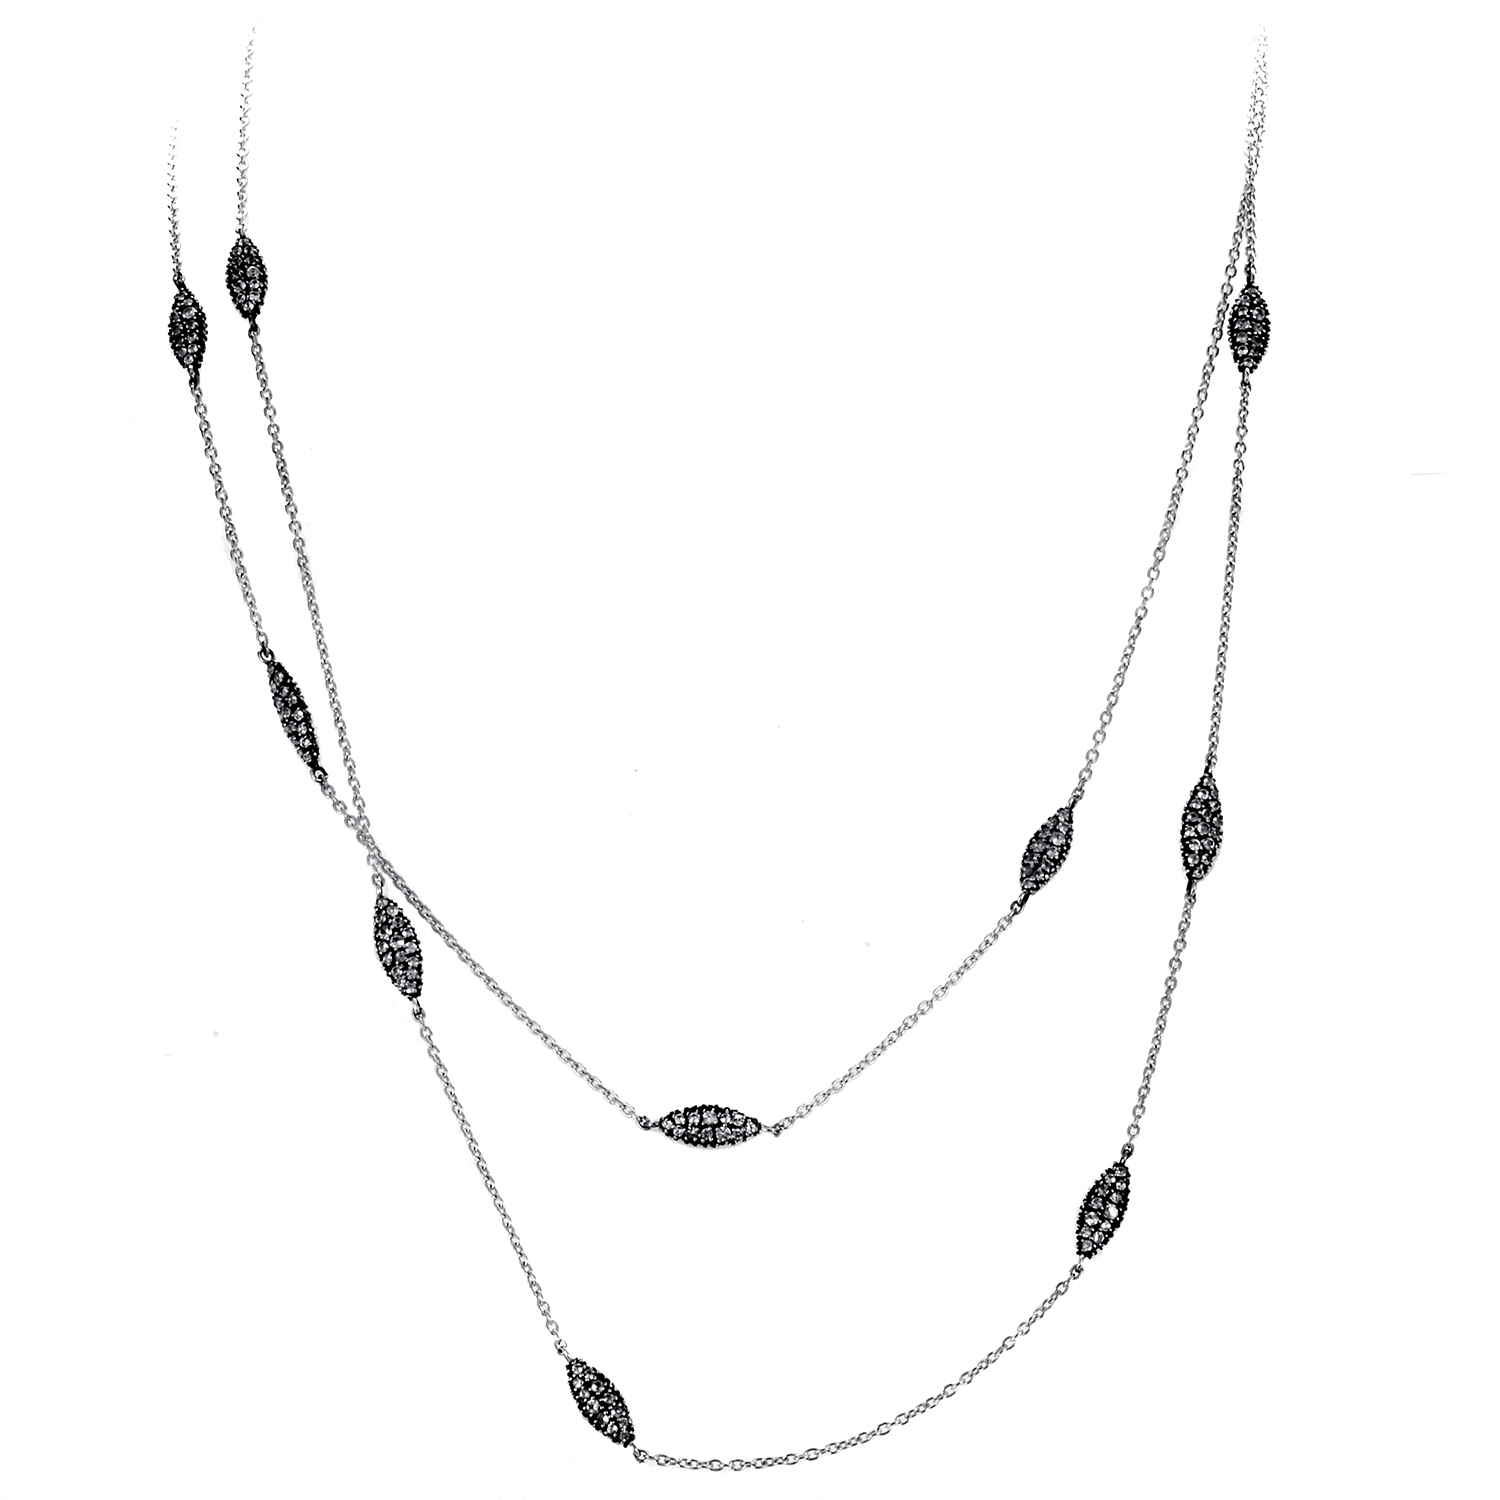 Women's Long Sterling Silver & White Sapphire Necklace FN51N008